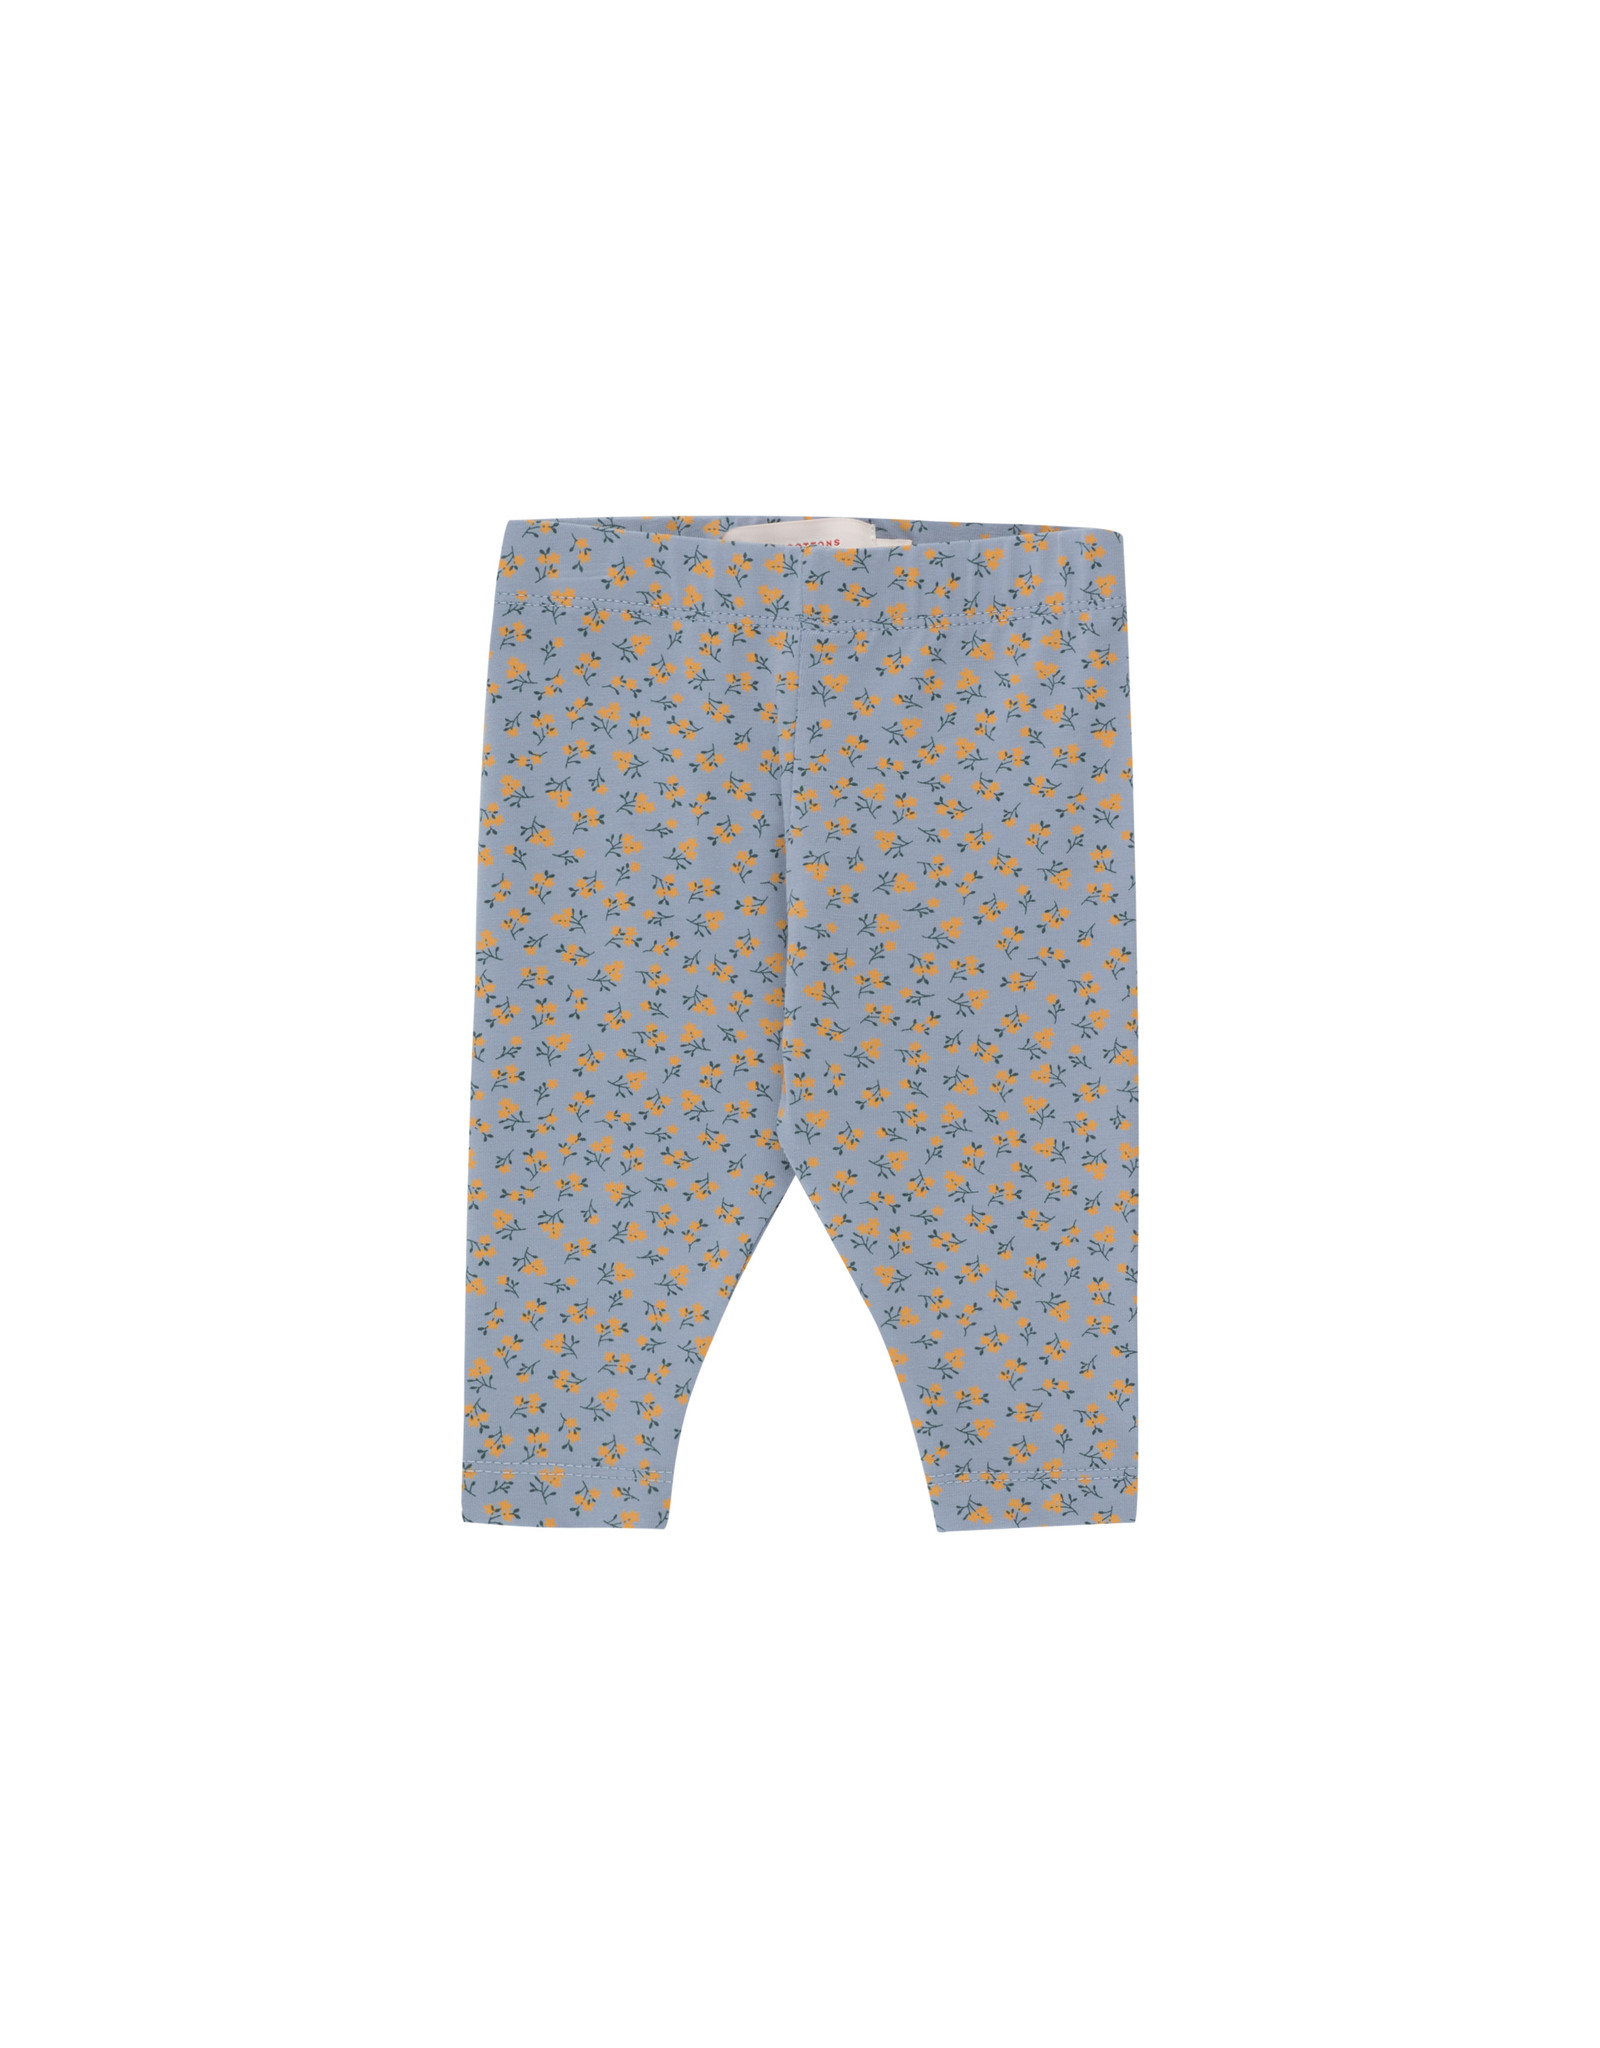 Tinycottons Small Flowers Baby Pant